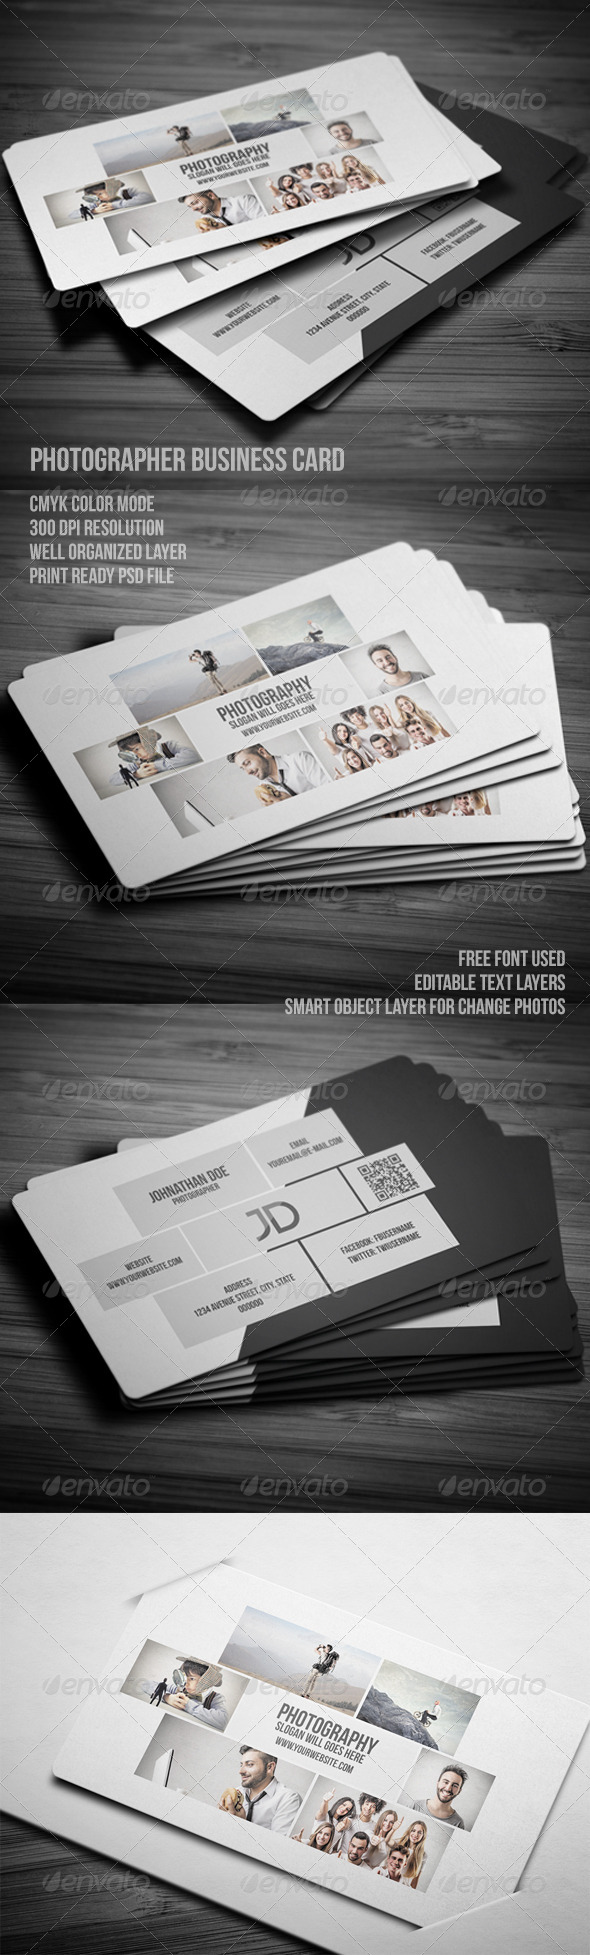 GraphicRiver Photographer Business Card Template 7874087